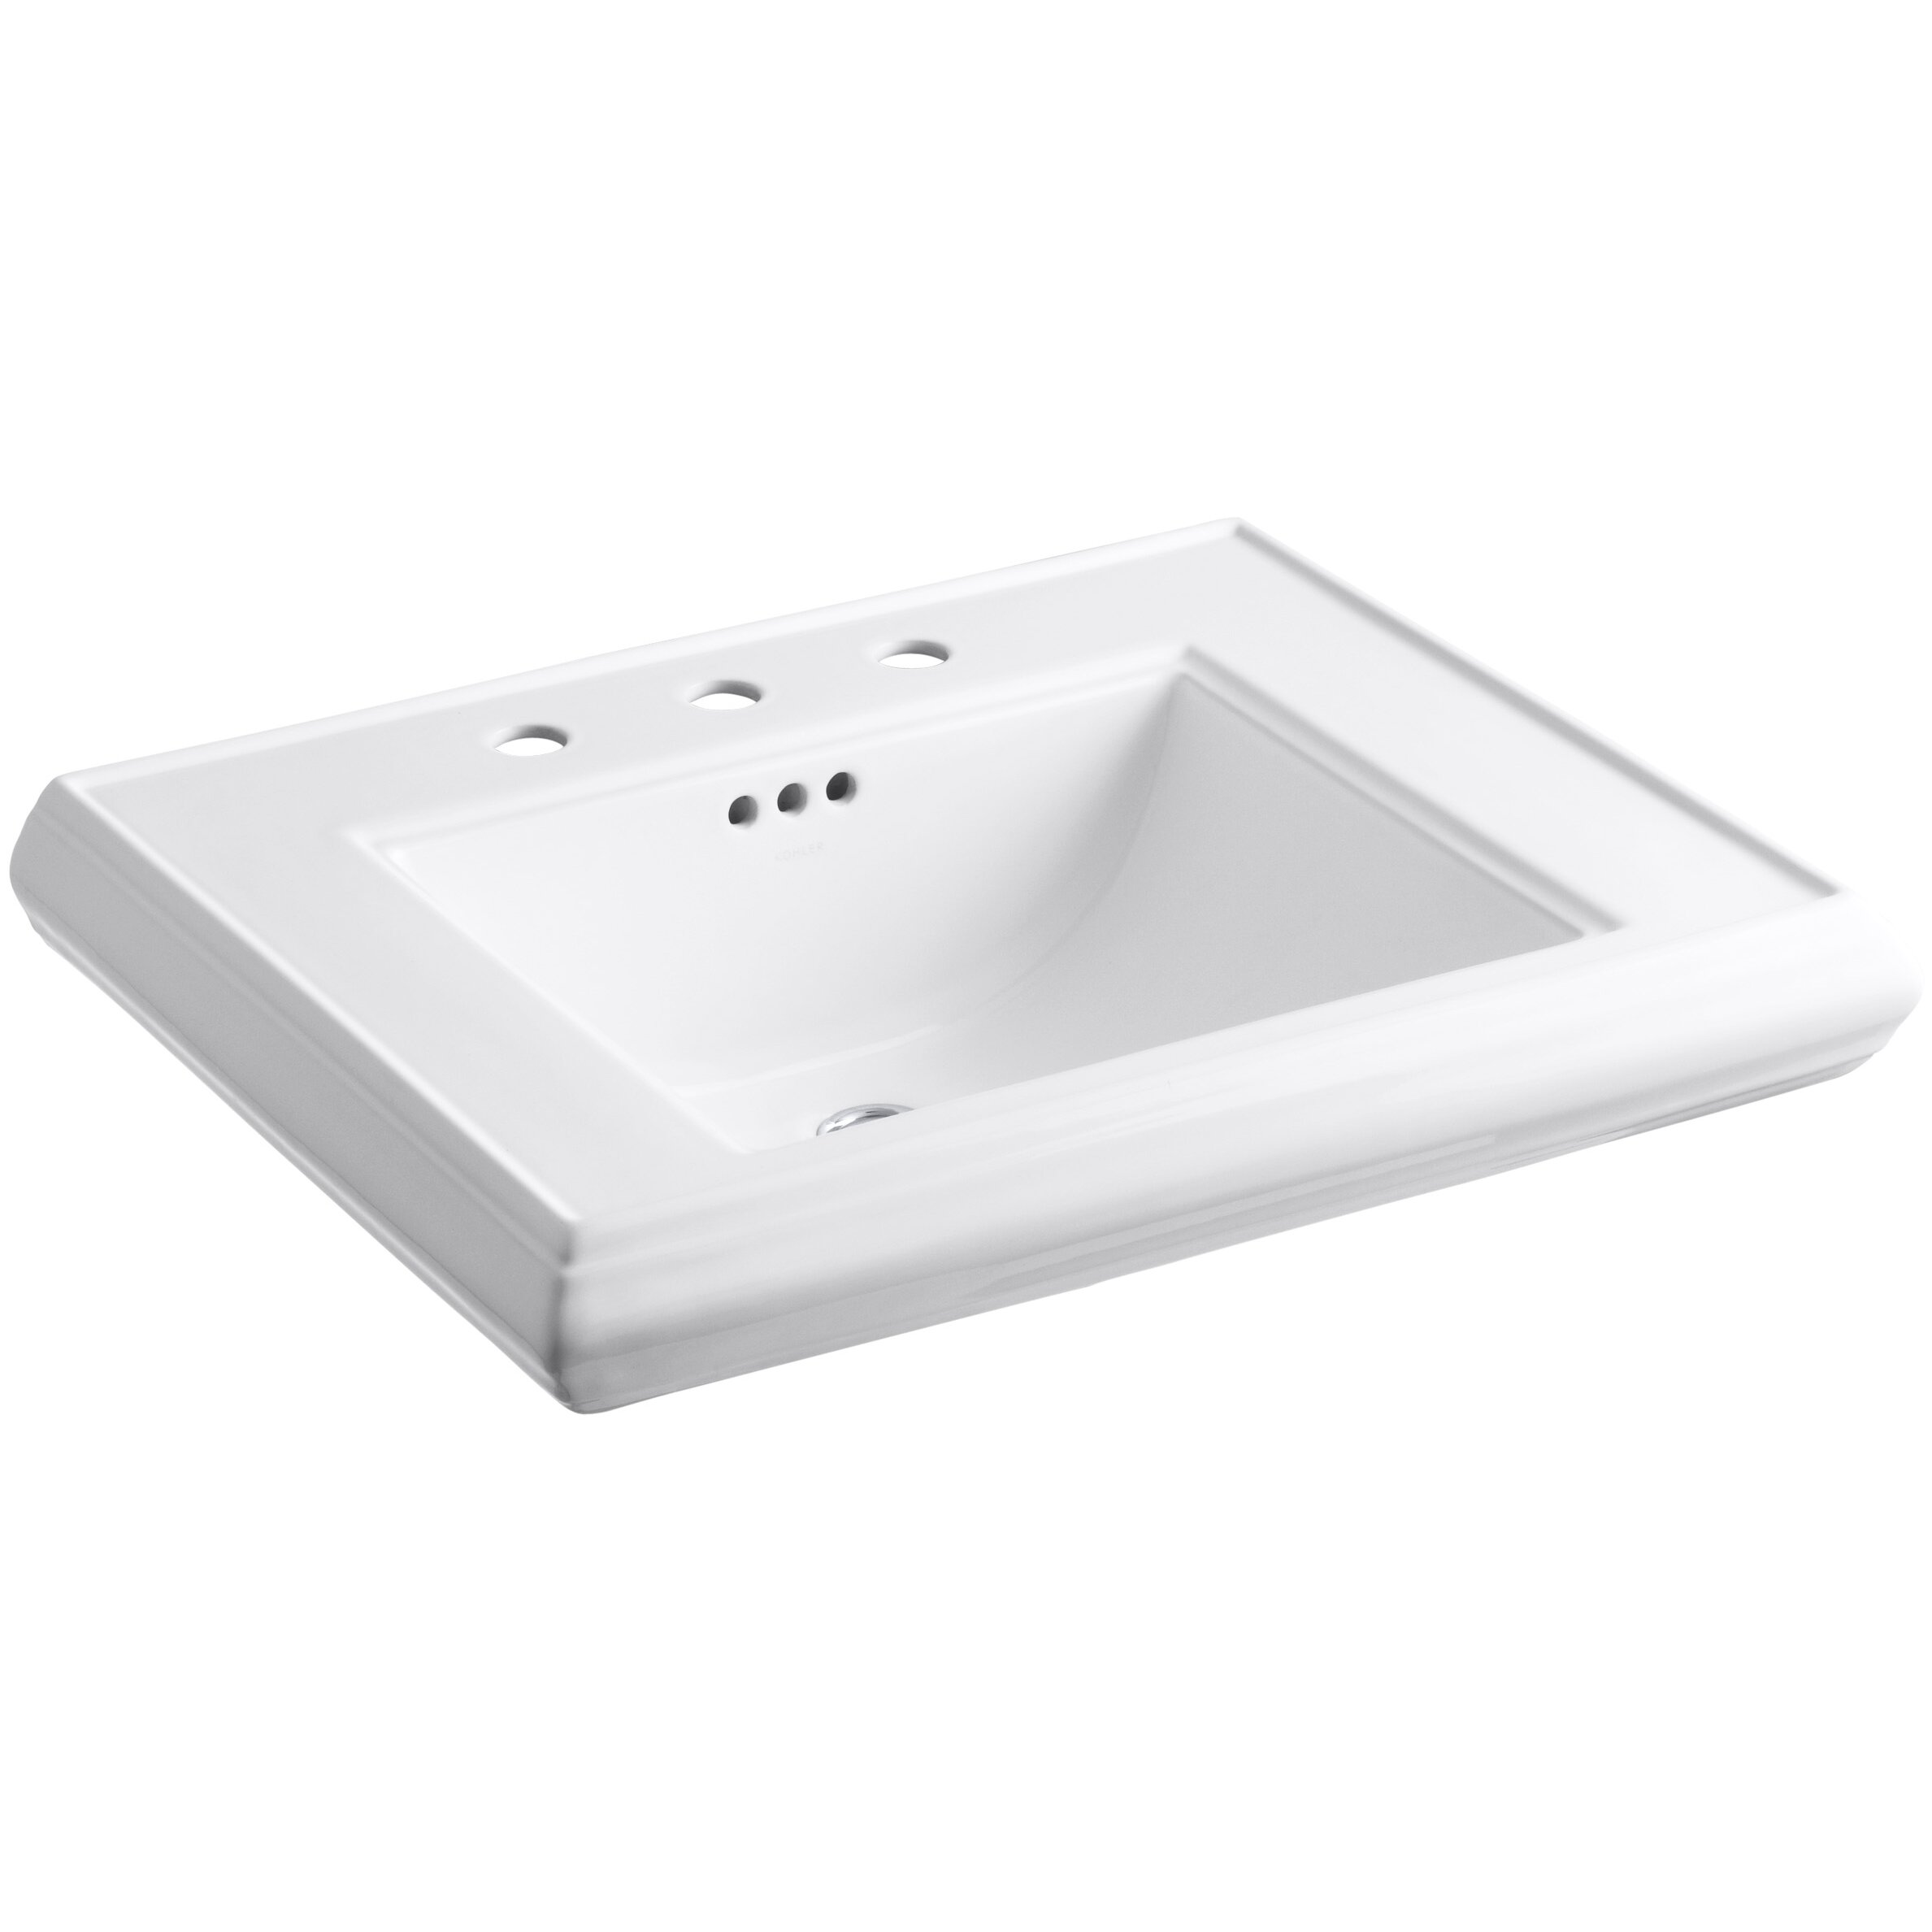 Kohler Memoirs Pedestal Bathroom Sink Basin Reviews Wayfair